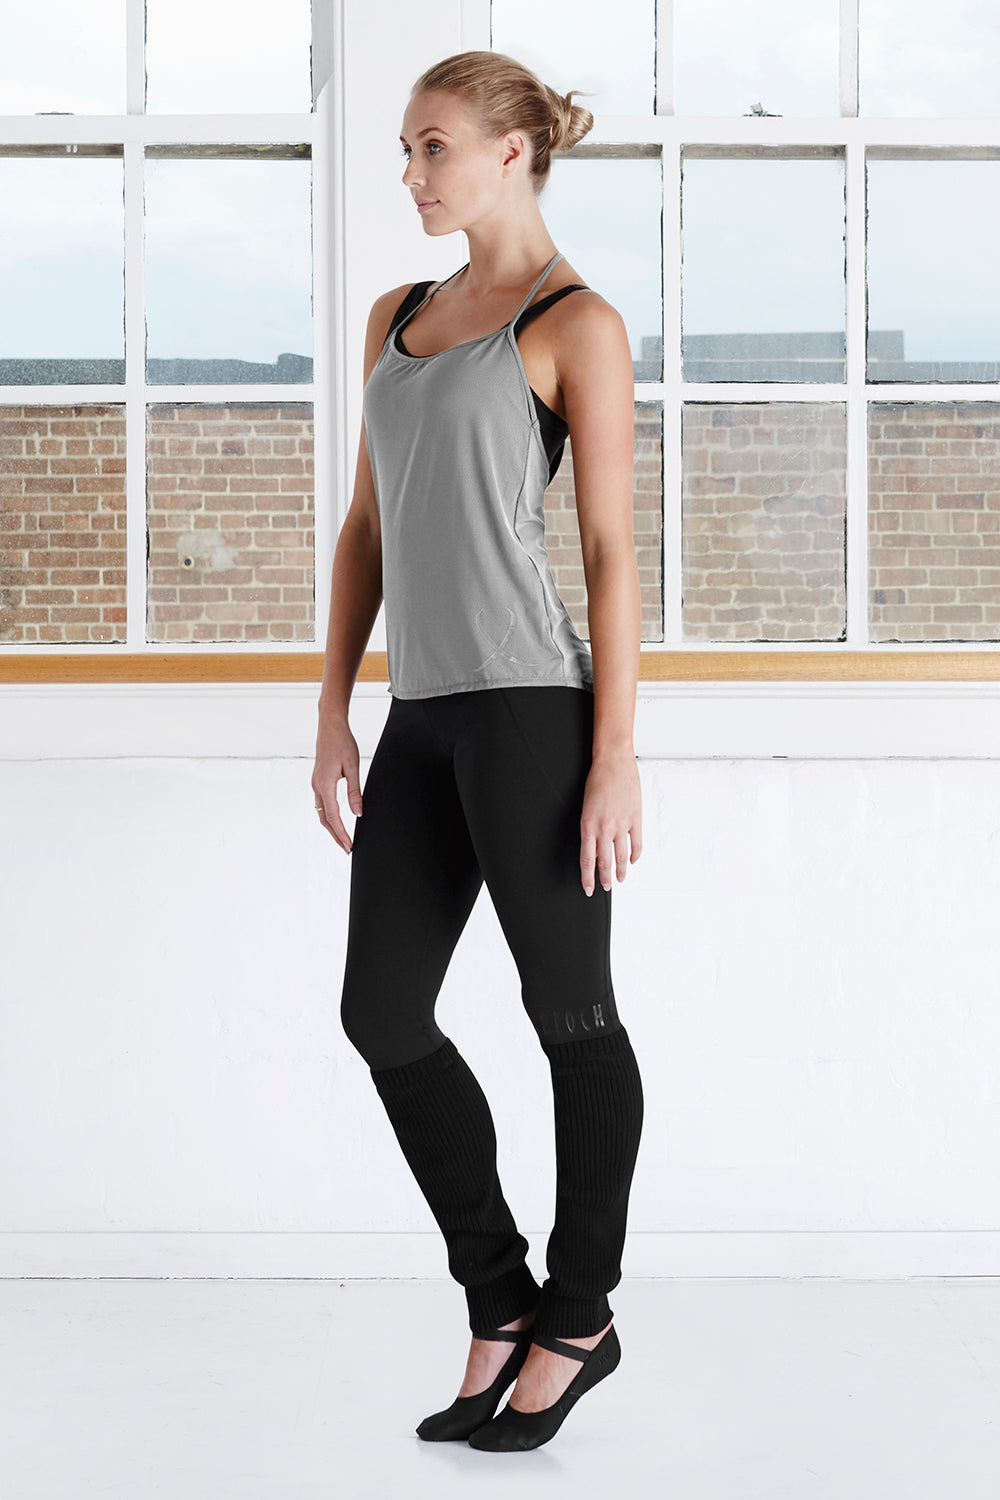 A female dancer in the studio wearing the Ladies BLOCH Branded T Back Top and stirrup leggings